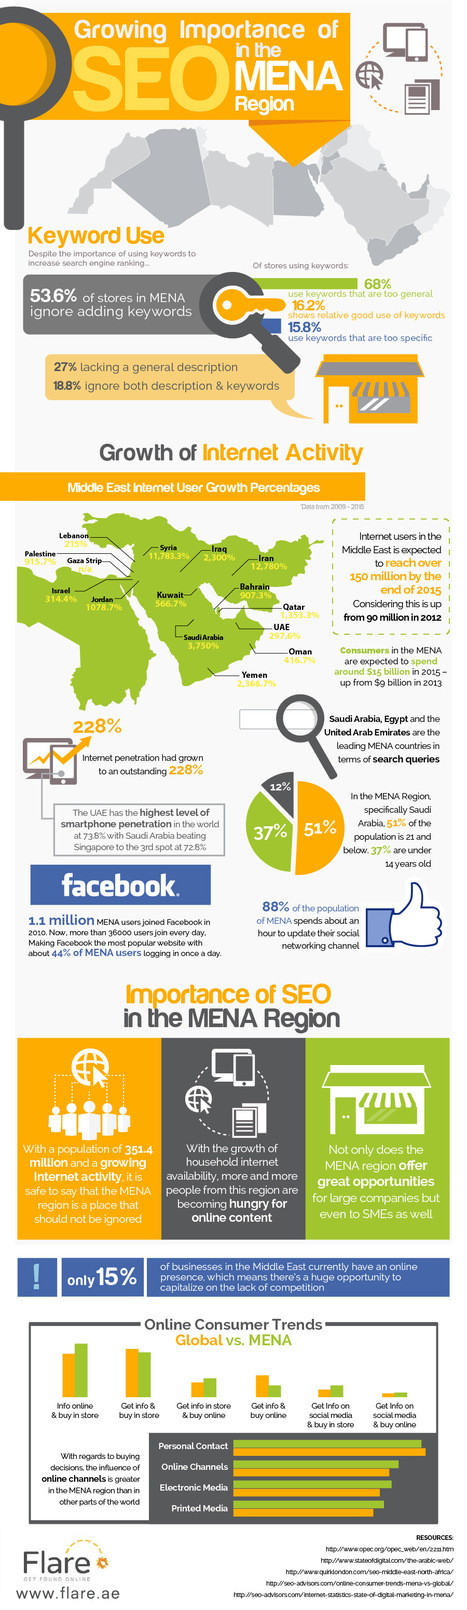 Growing Importance of SEO in the MENA Region | Infographics | Scoop.it